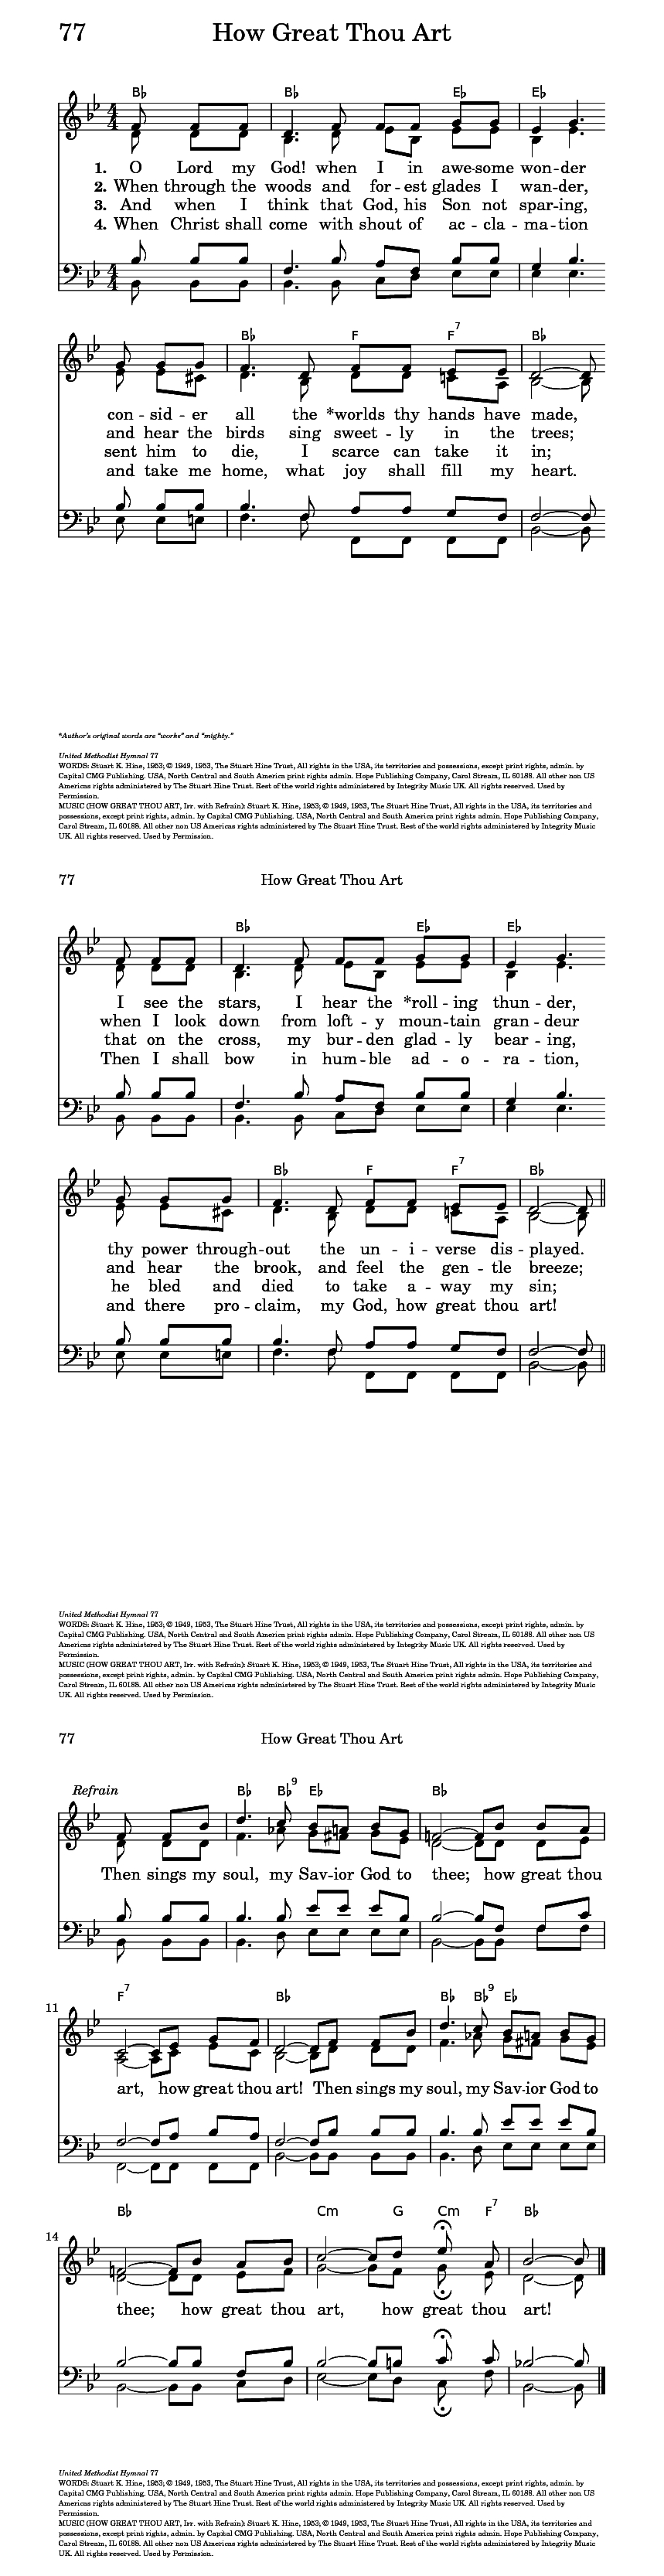 How Great Thou Art Chords The United Methodist Hymnal 77 O Lord My God When I In Awesome